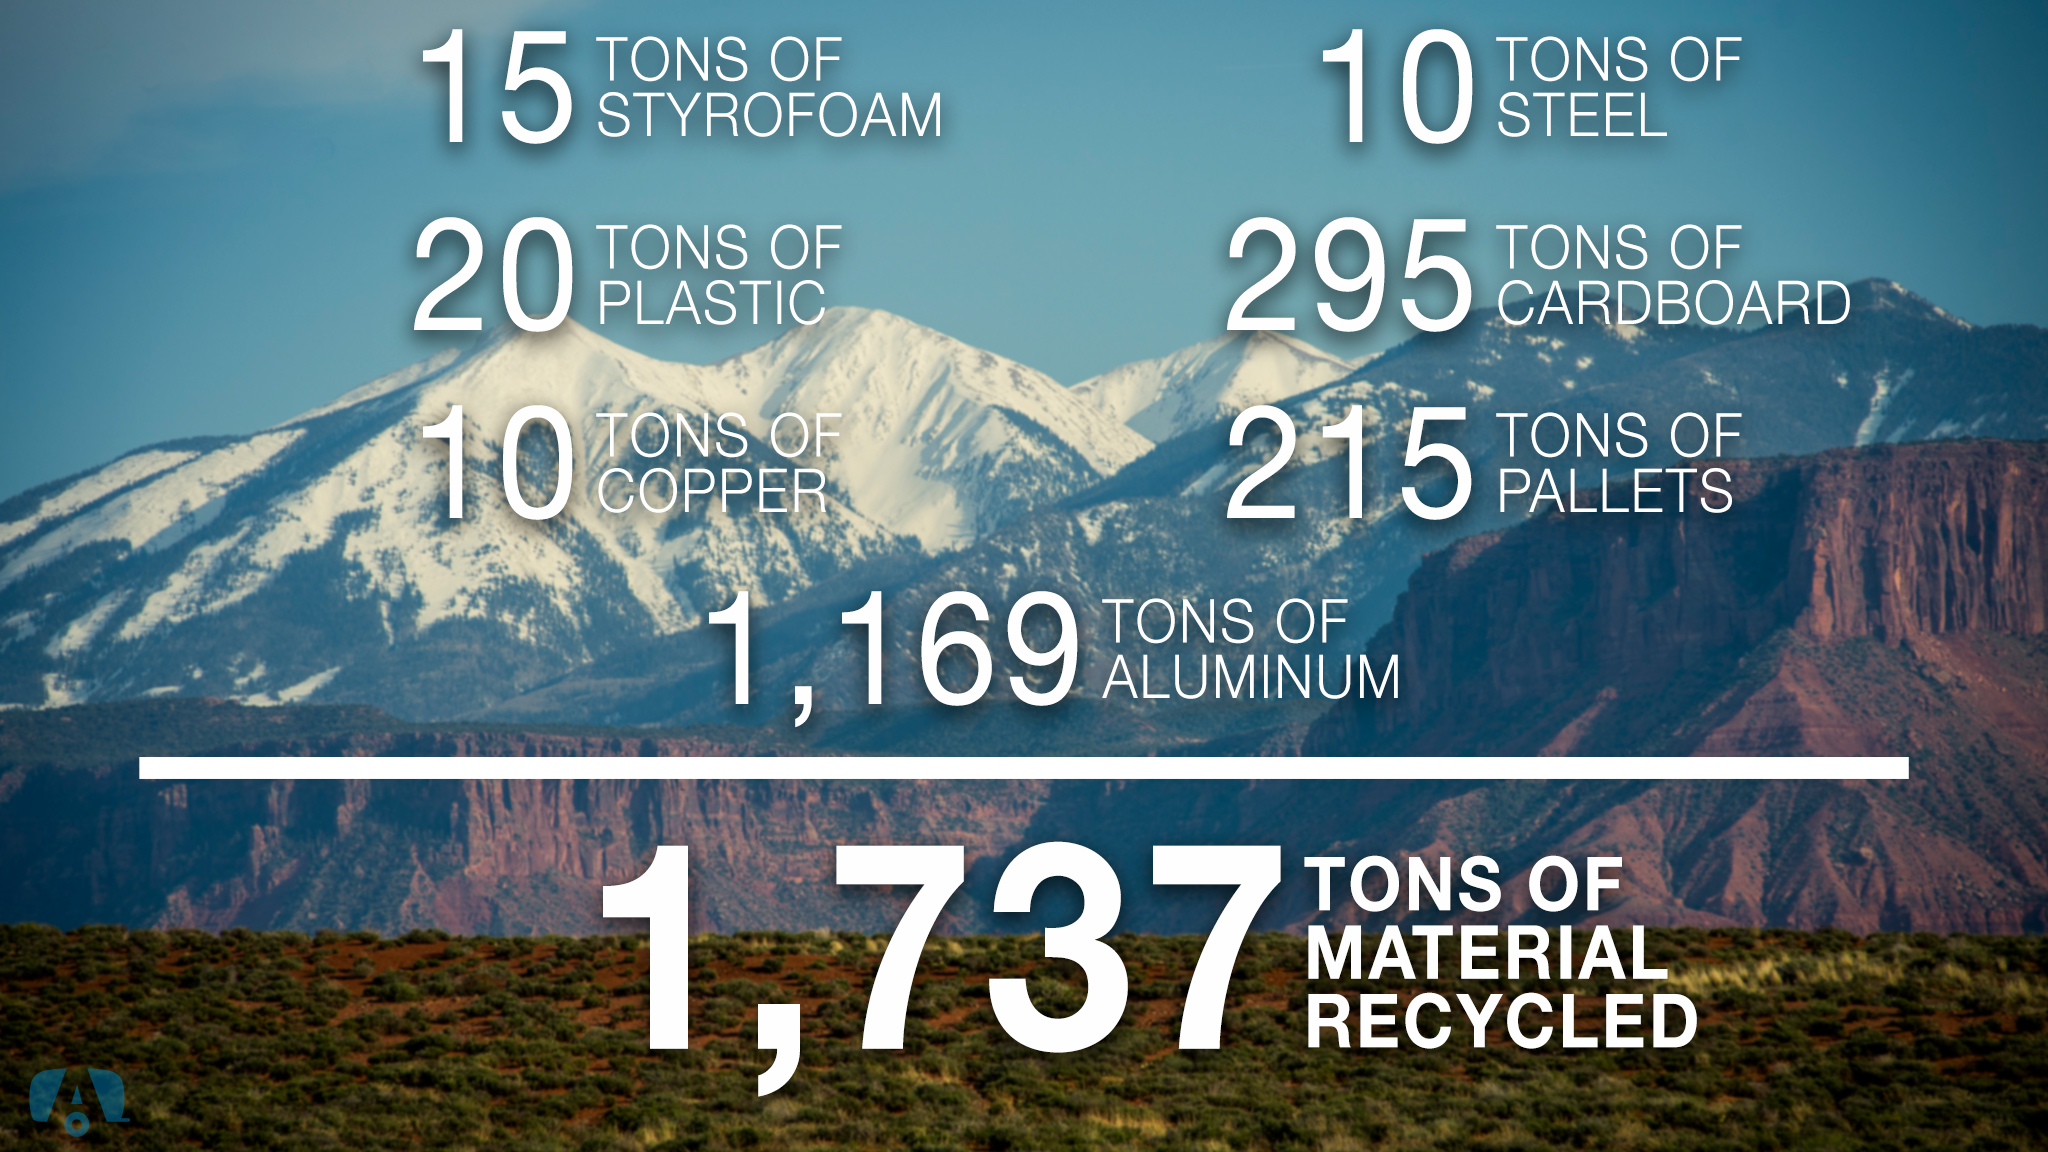 Recycled-Waste-Infographic-CSR.V3